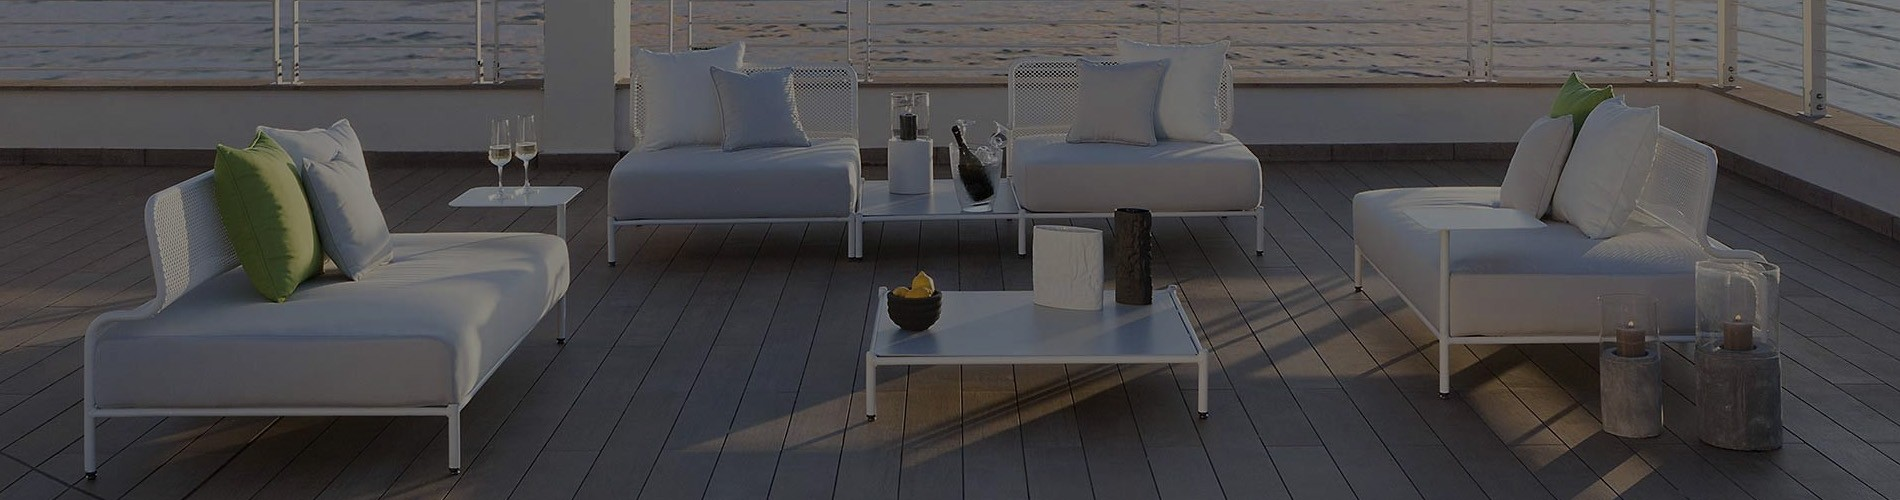 Italian Garden Patio Furniture | Sofa Tables Chairs Set | Rattan